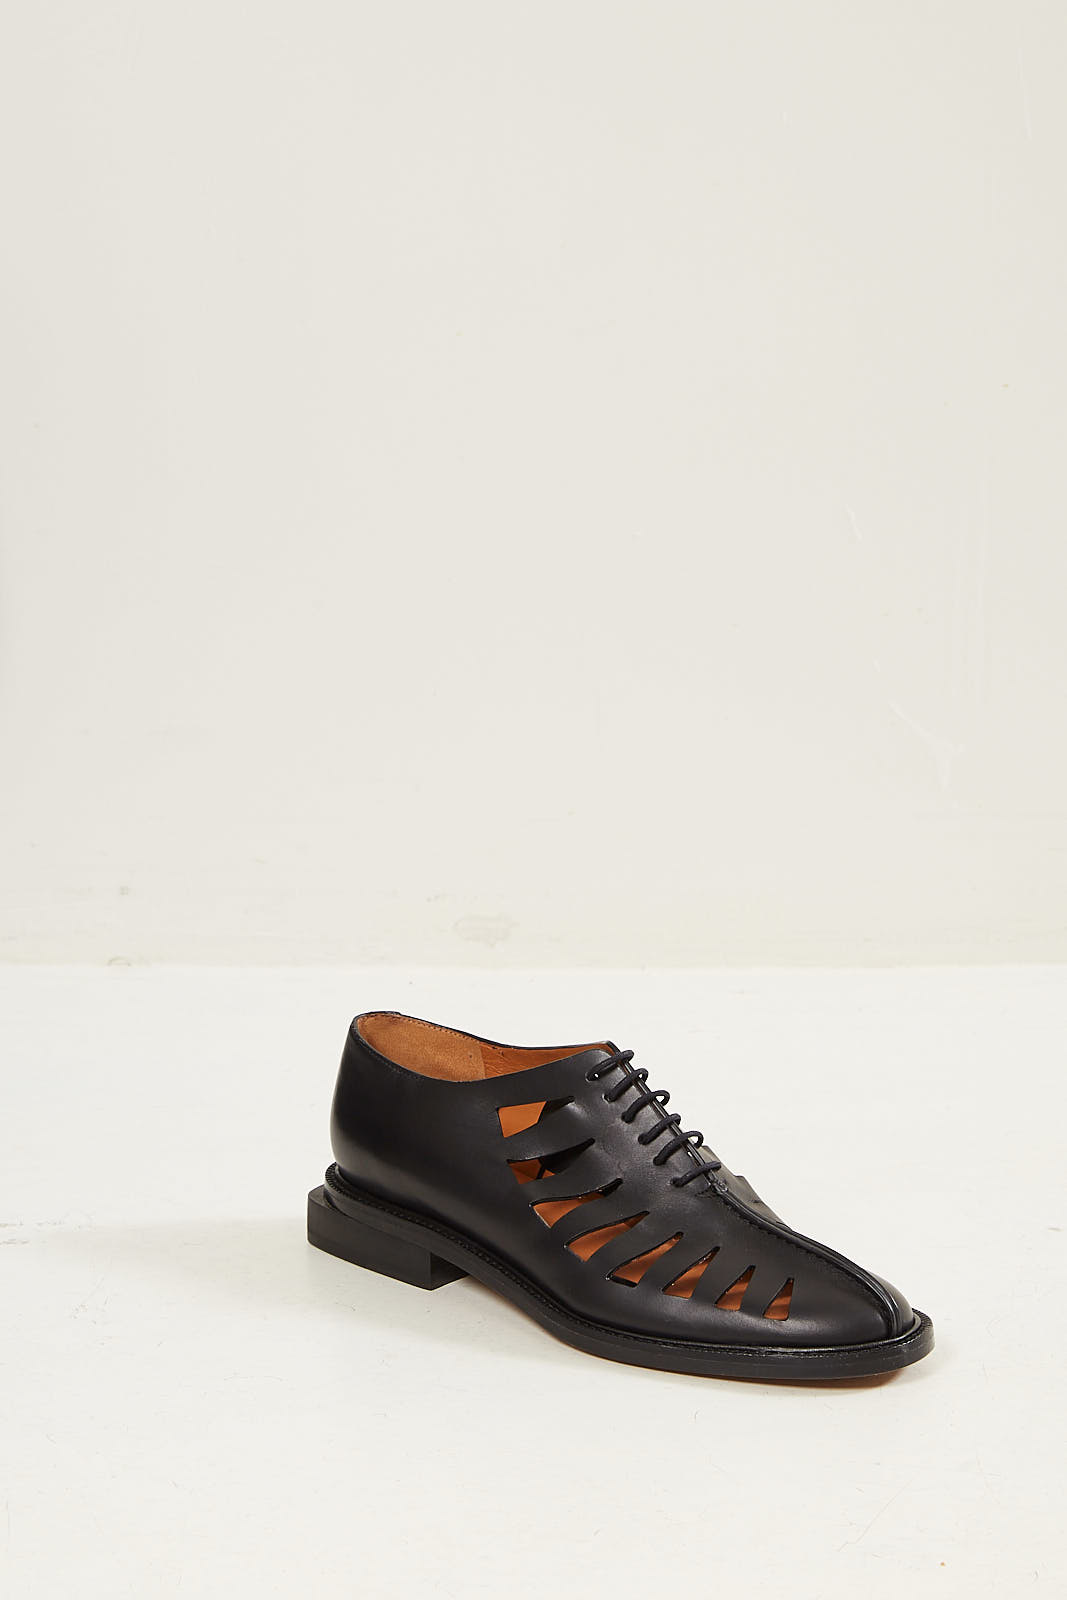 Clergerie Raphael cutout oxfords.